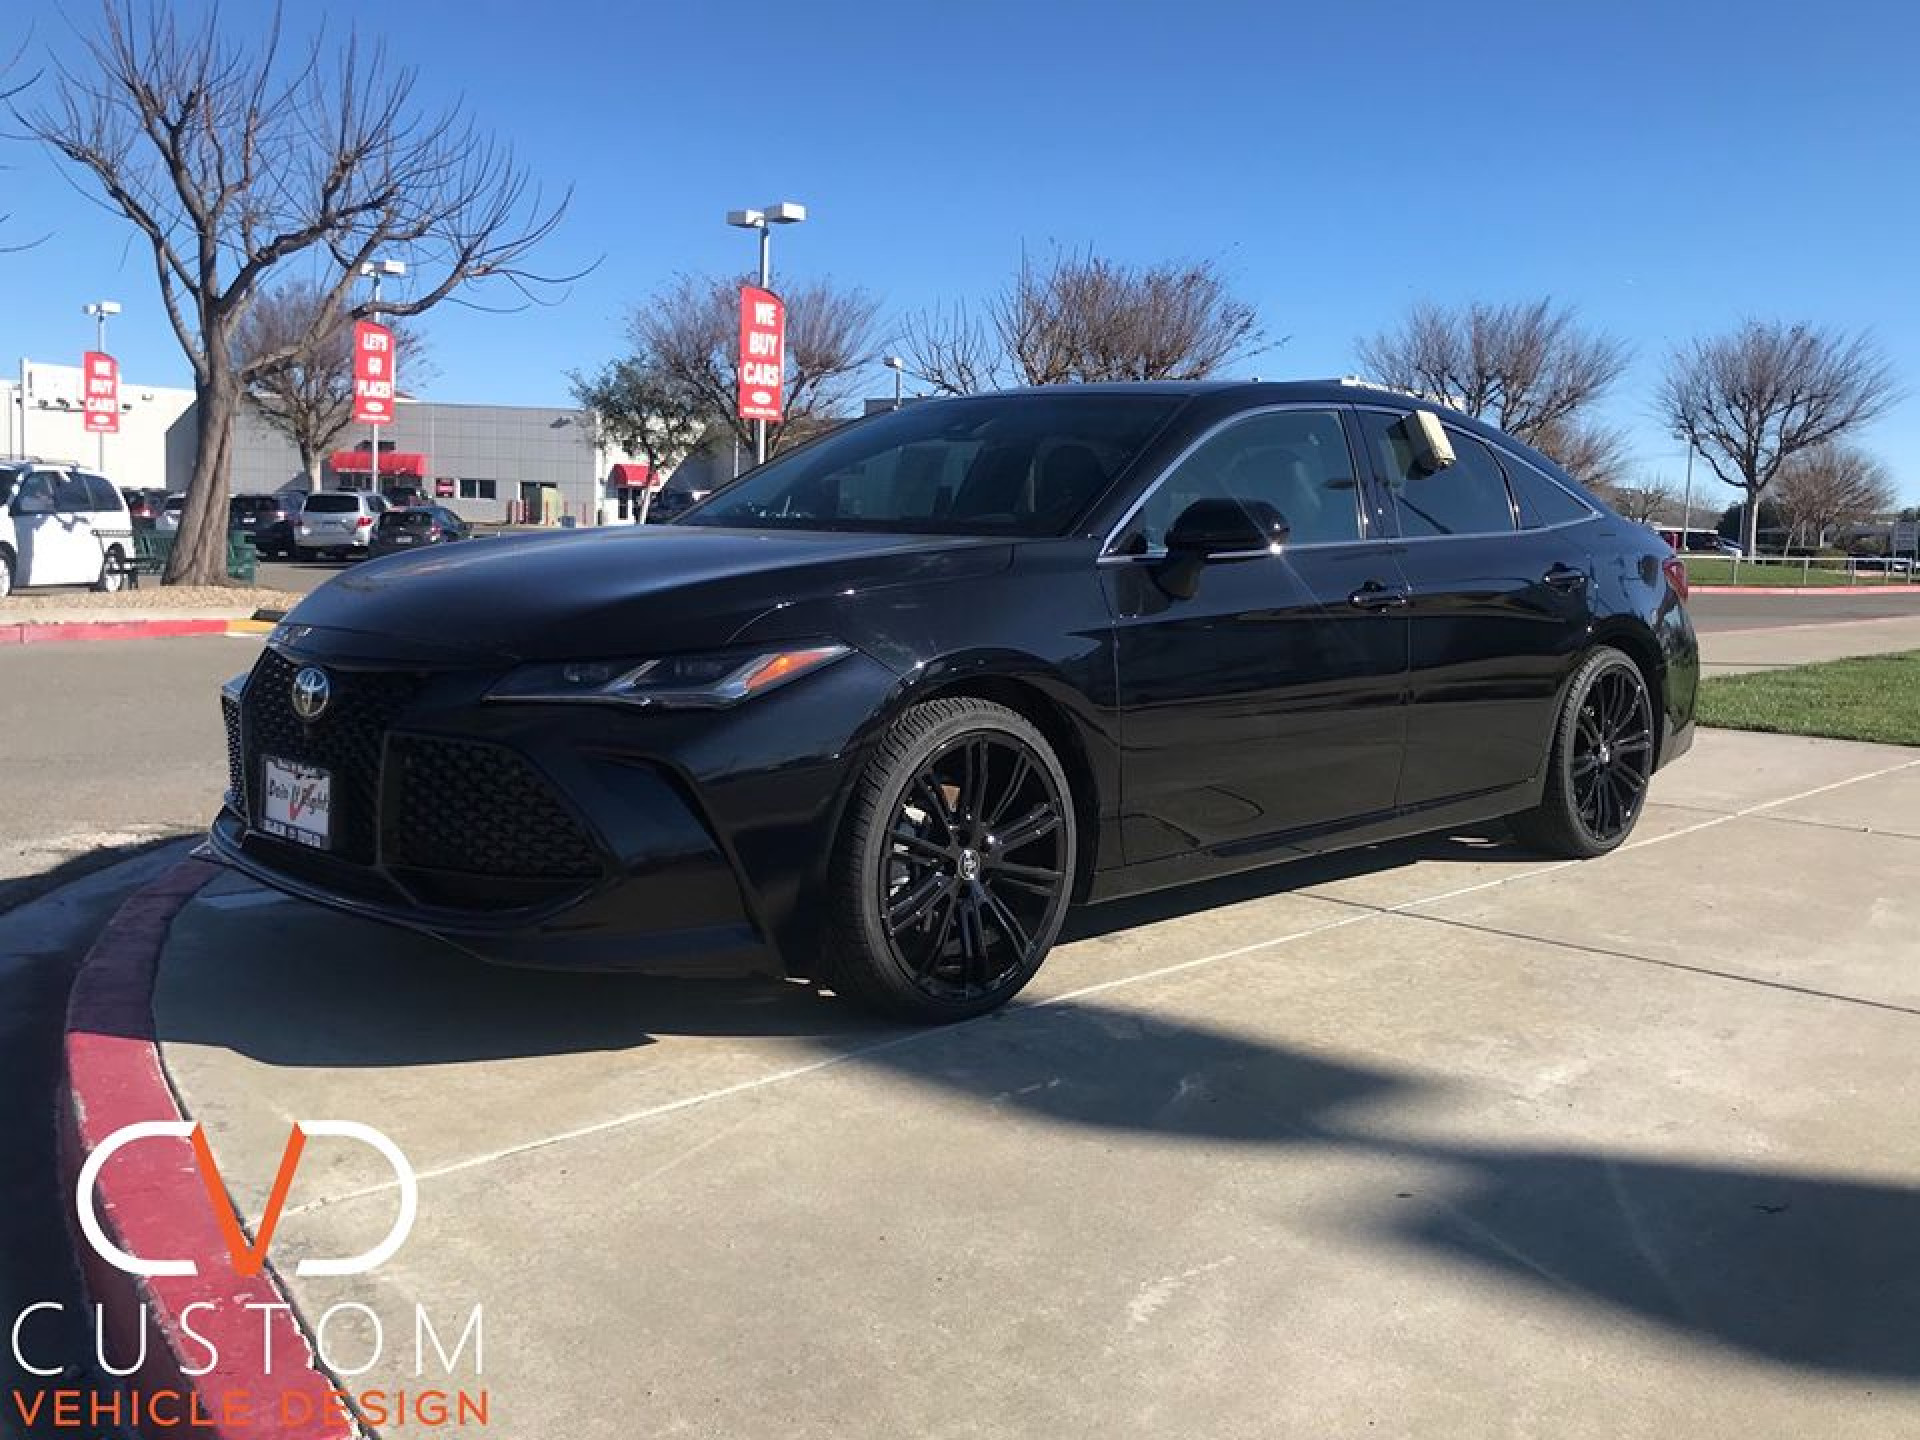 "2020 Toyota Avalon with 20"" Vogue VT386 wheels and Signature V tires"